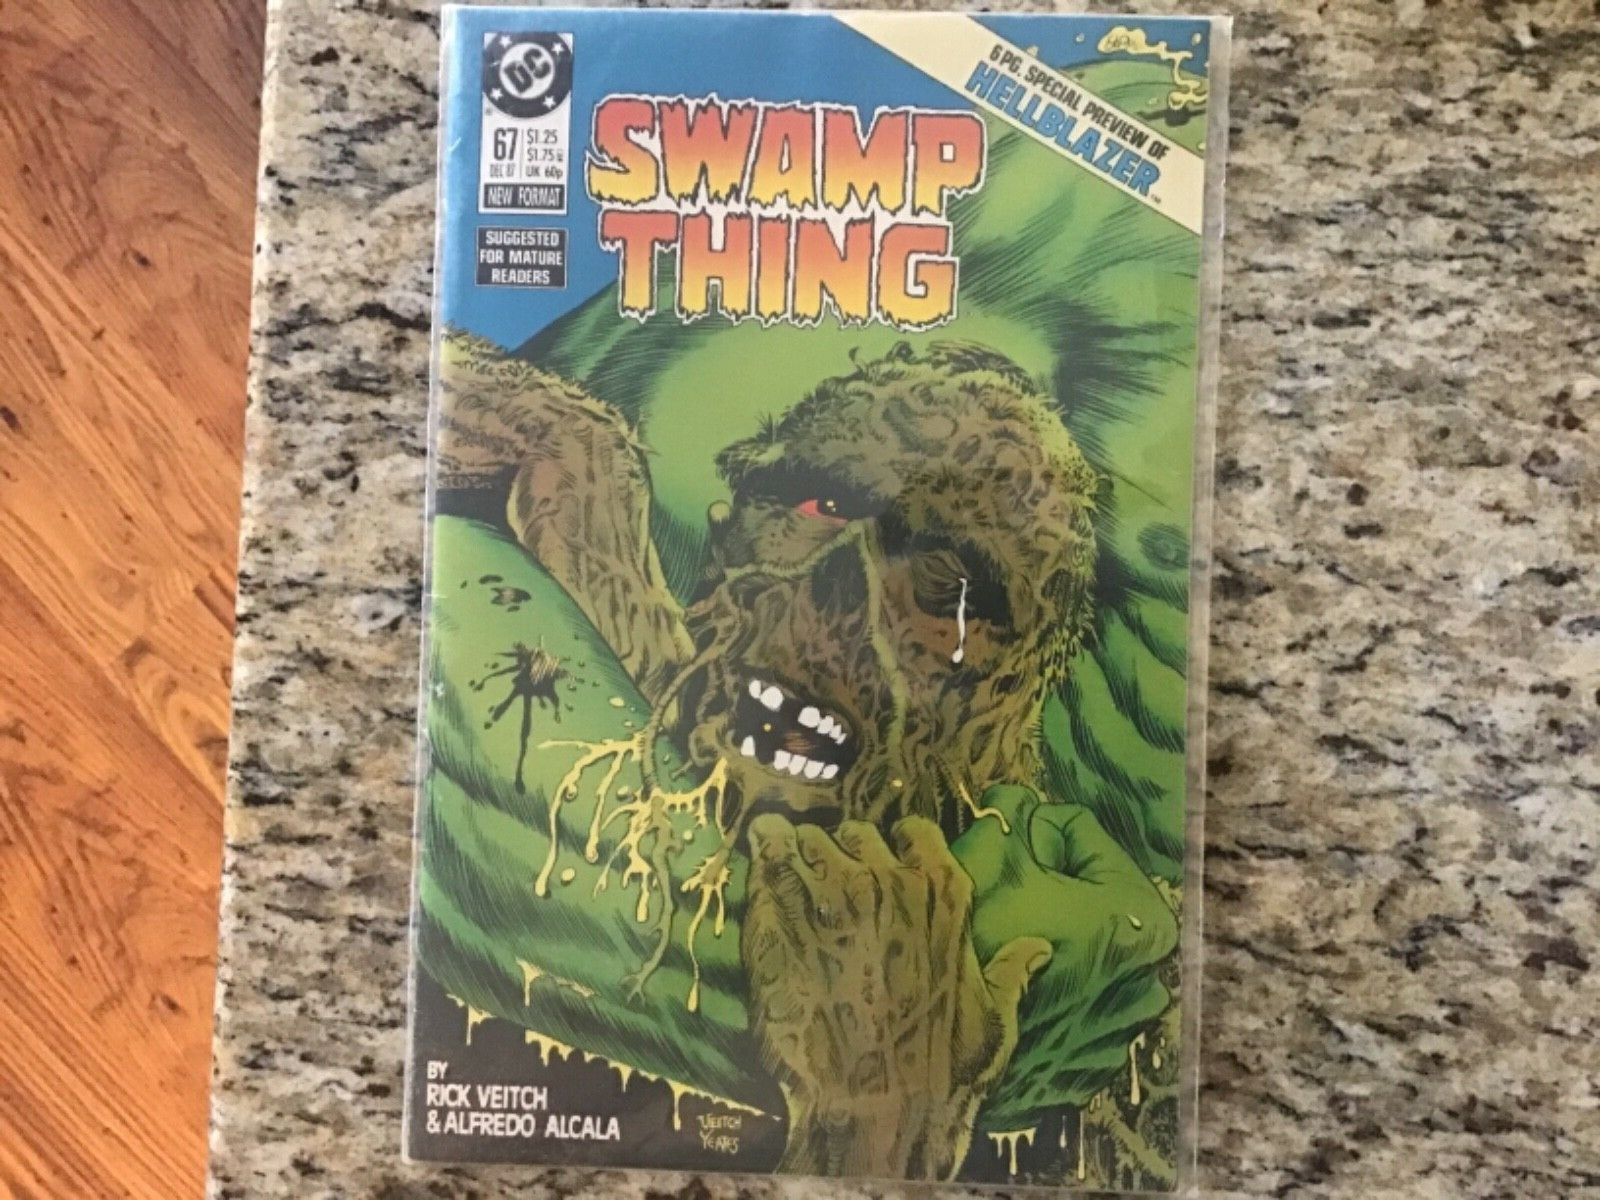 SWAMP THING #67 HELLBLAZER CONSTANTINE PREVIEW 1987 Key DC Comic